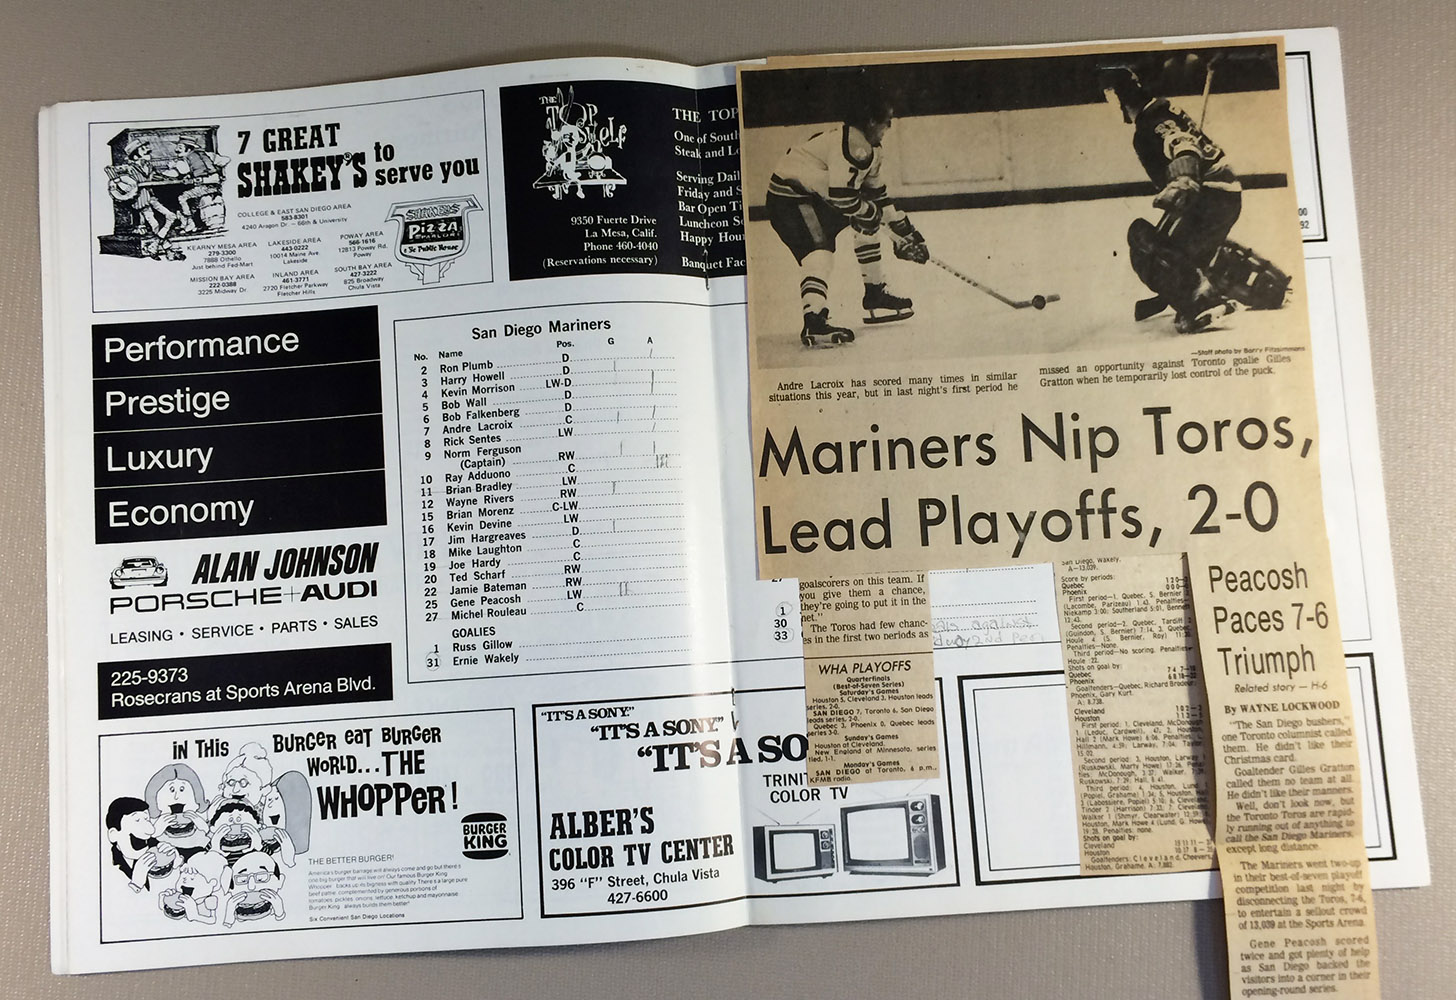 hockey_wha_san_diego_mariners_1975_playoff_game_programA.jpg